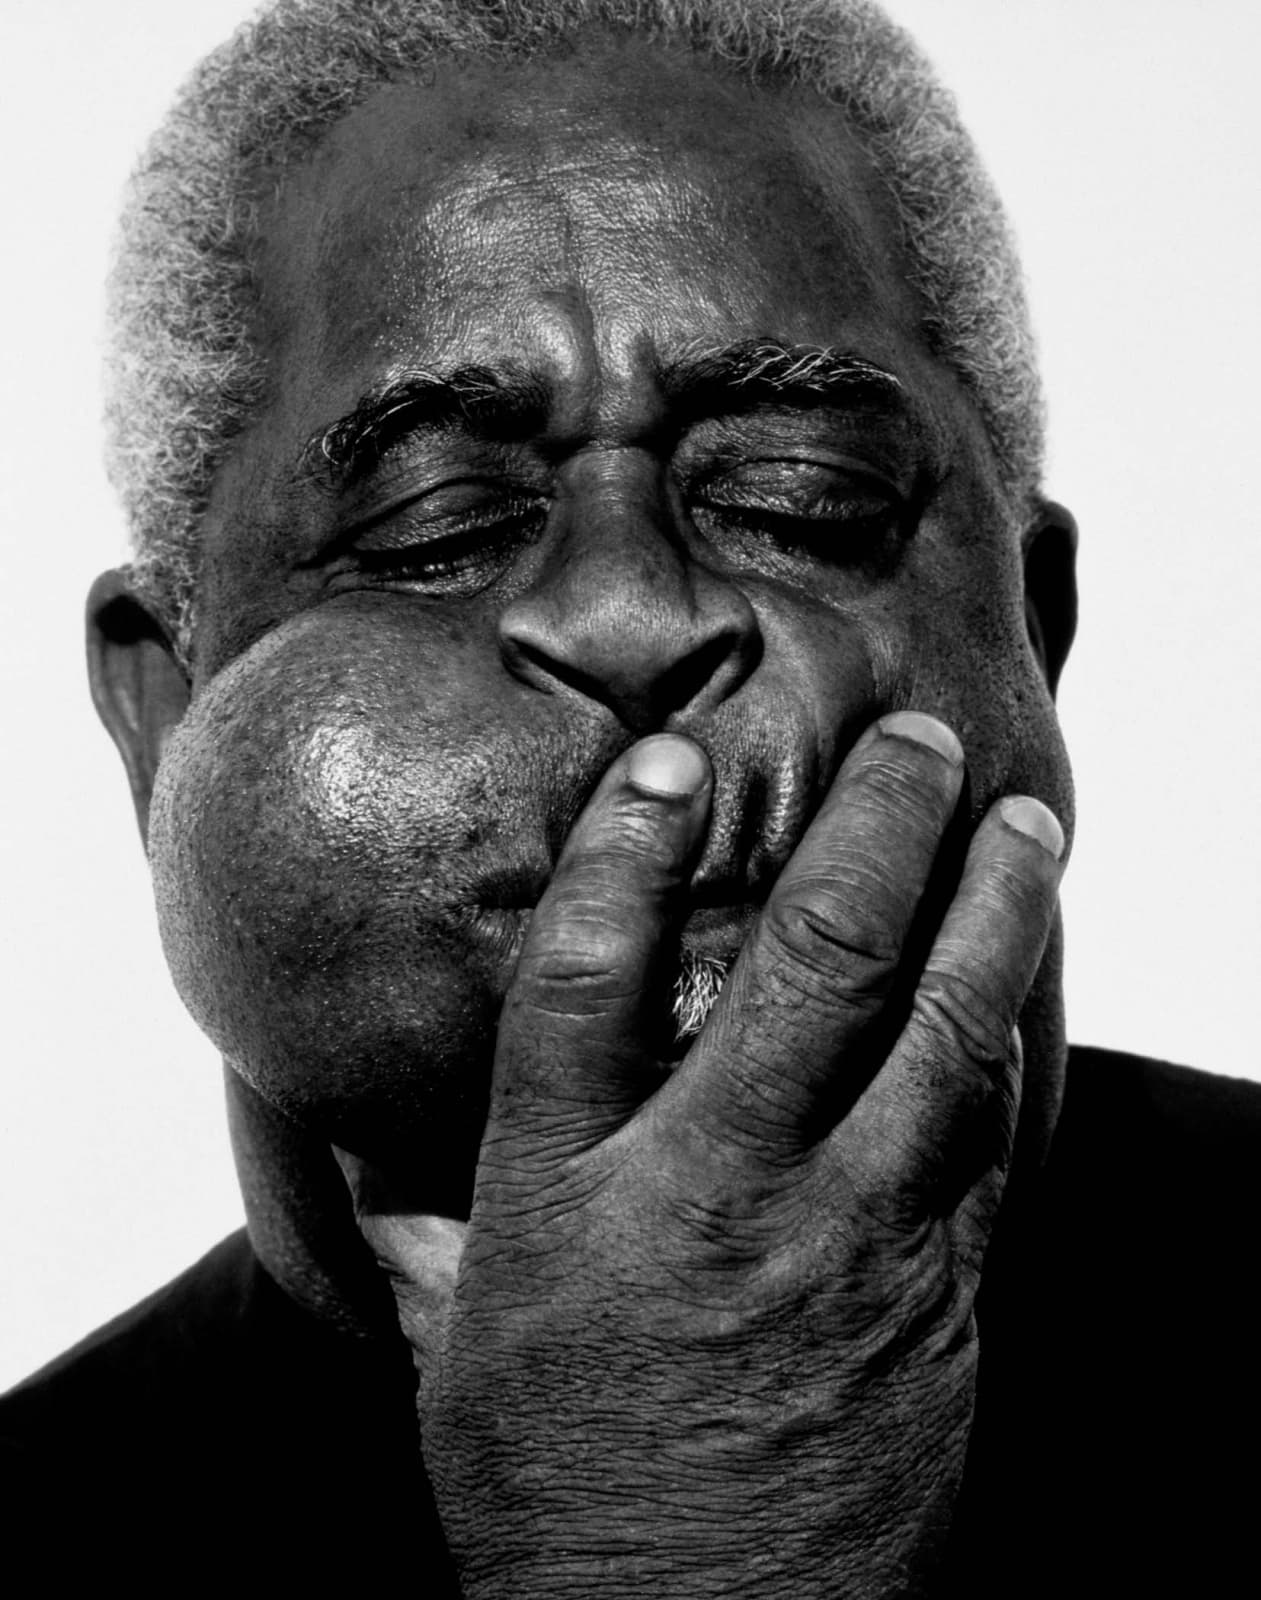 Herb Ritts photograph of Dizzy Gillespie with cheek inflated, hand on mouth, Paris